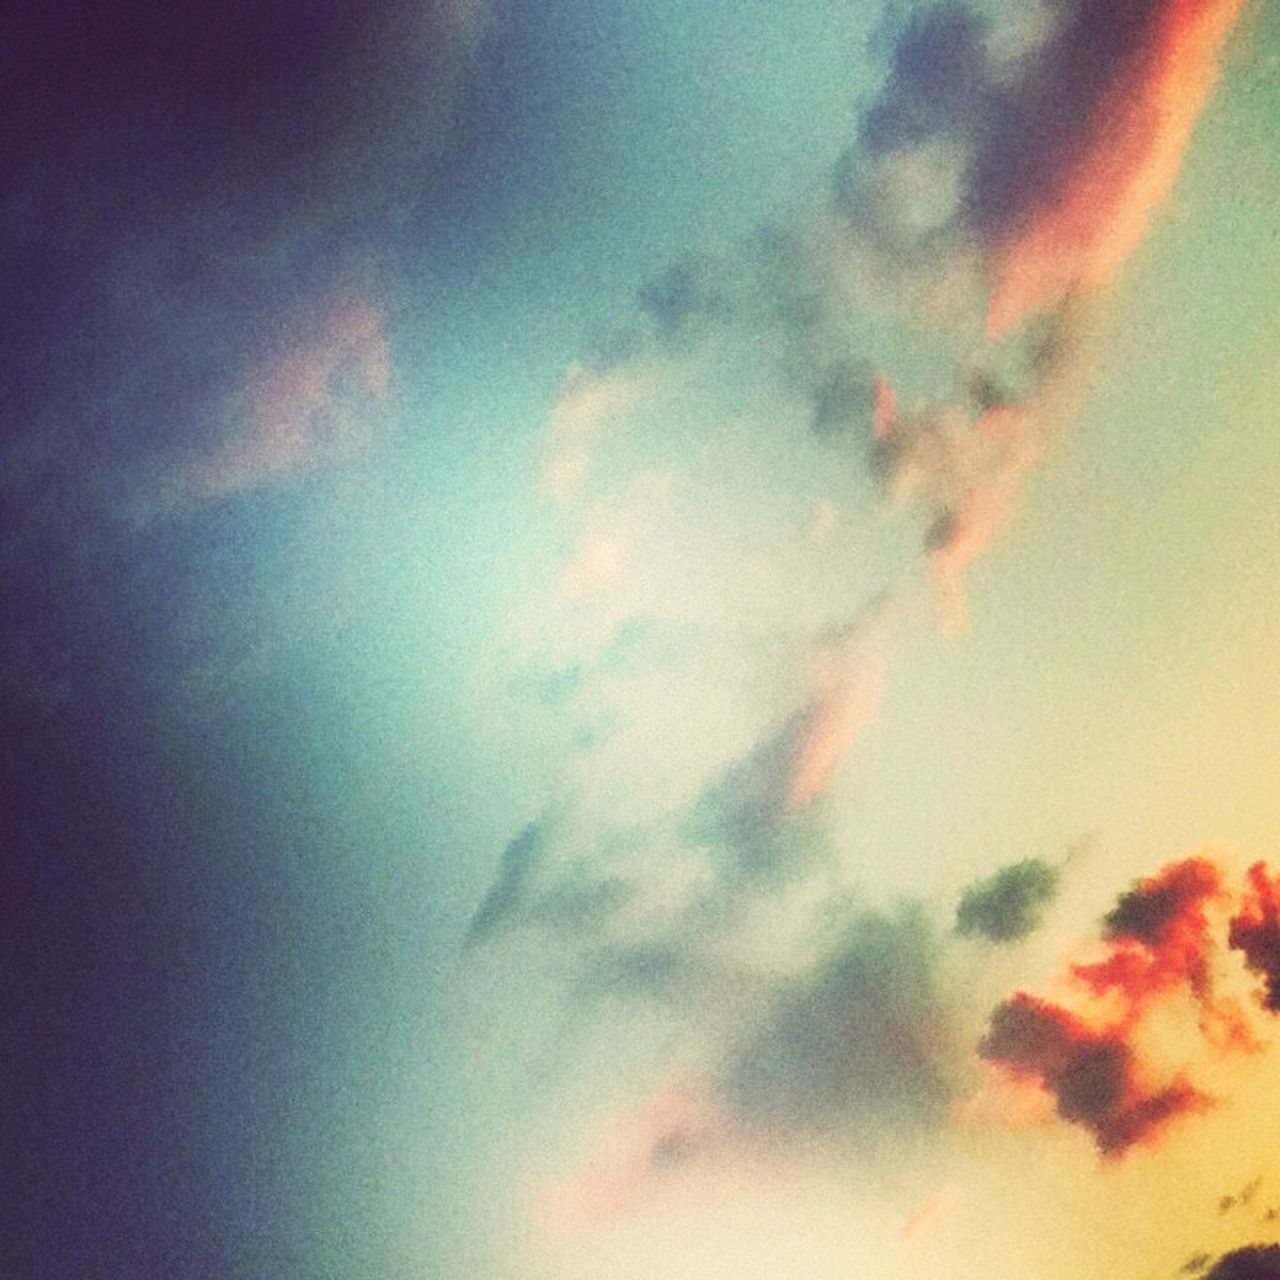 sky, cloud - sky, nature, beauty in nature, low angle view, scenics, multi colored, cloudscape, tranquil scene, no people, sunset, sky only, outdoors, tranquility, abstract, backgrounds, day